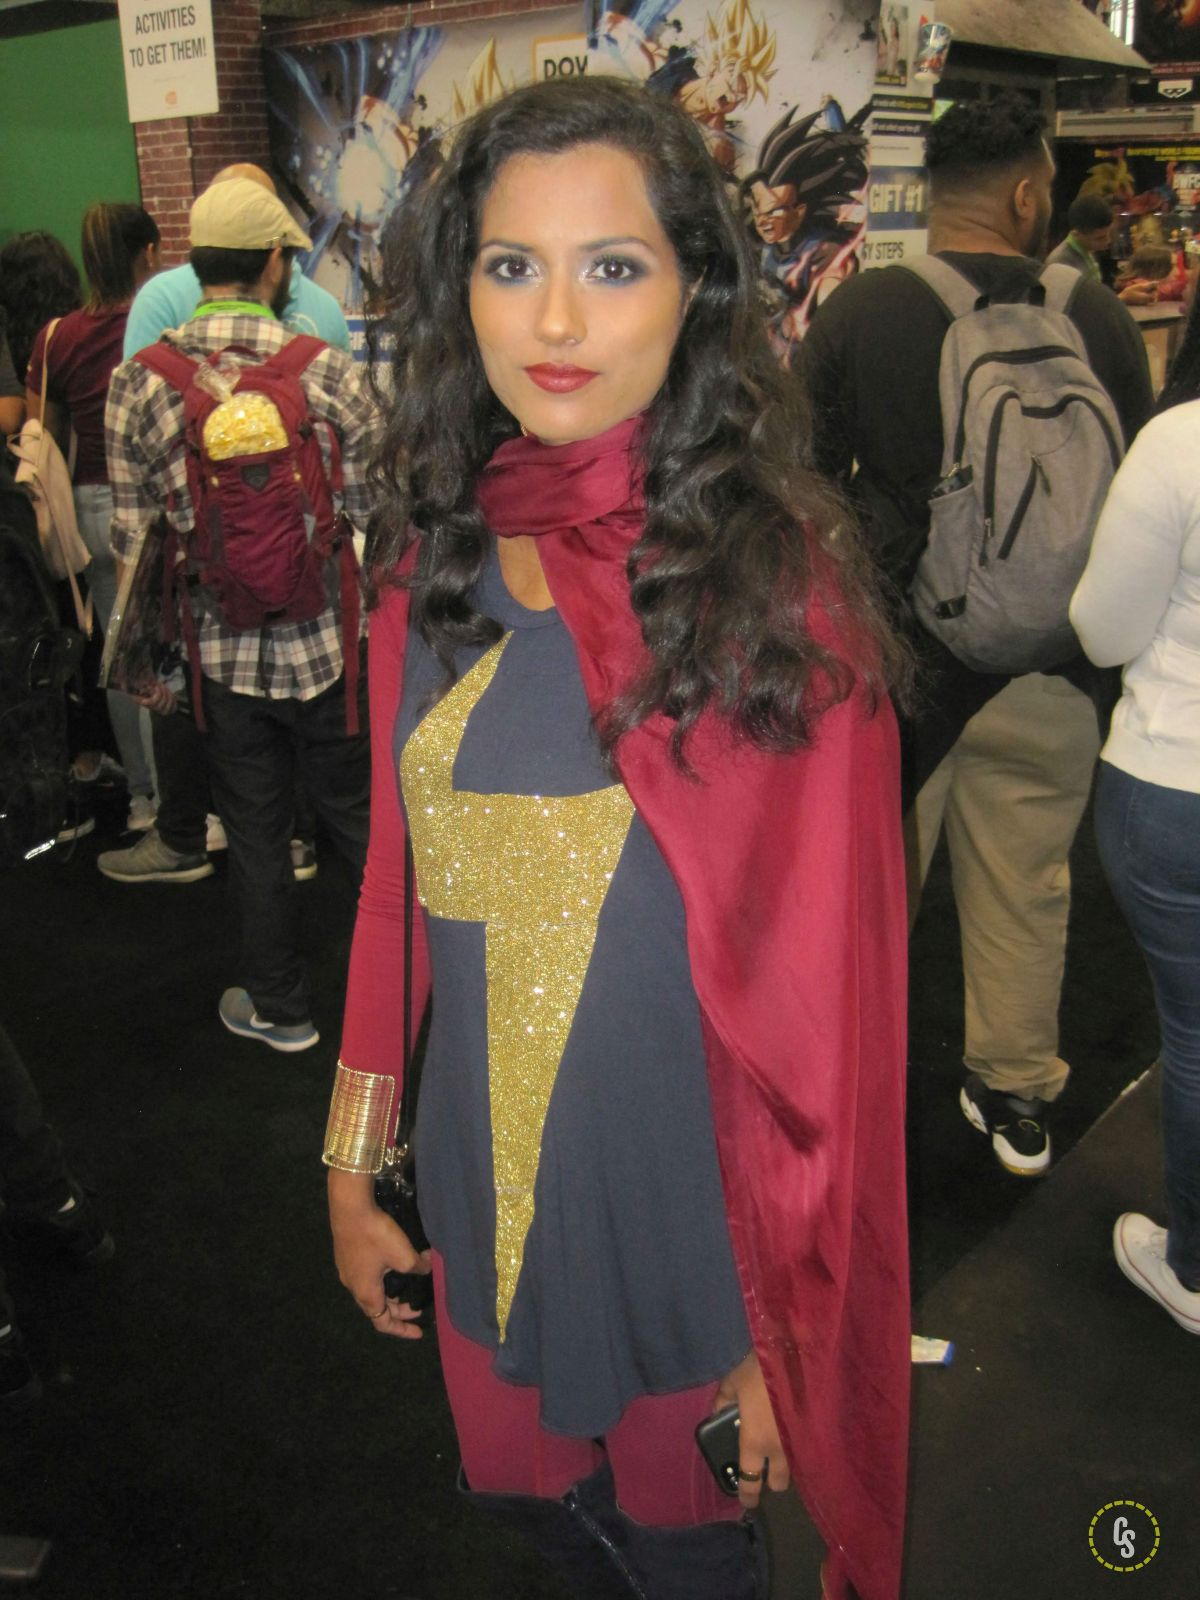 nycc183_051